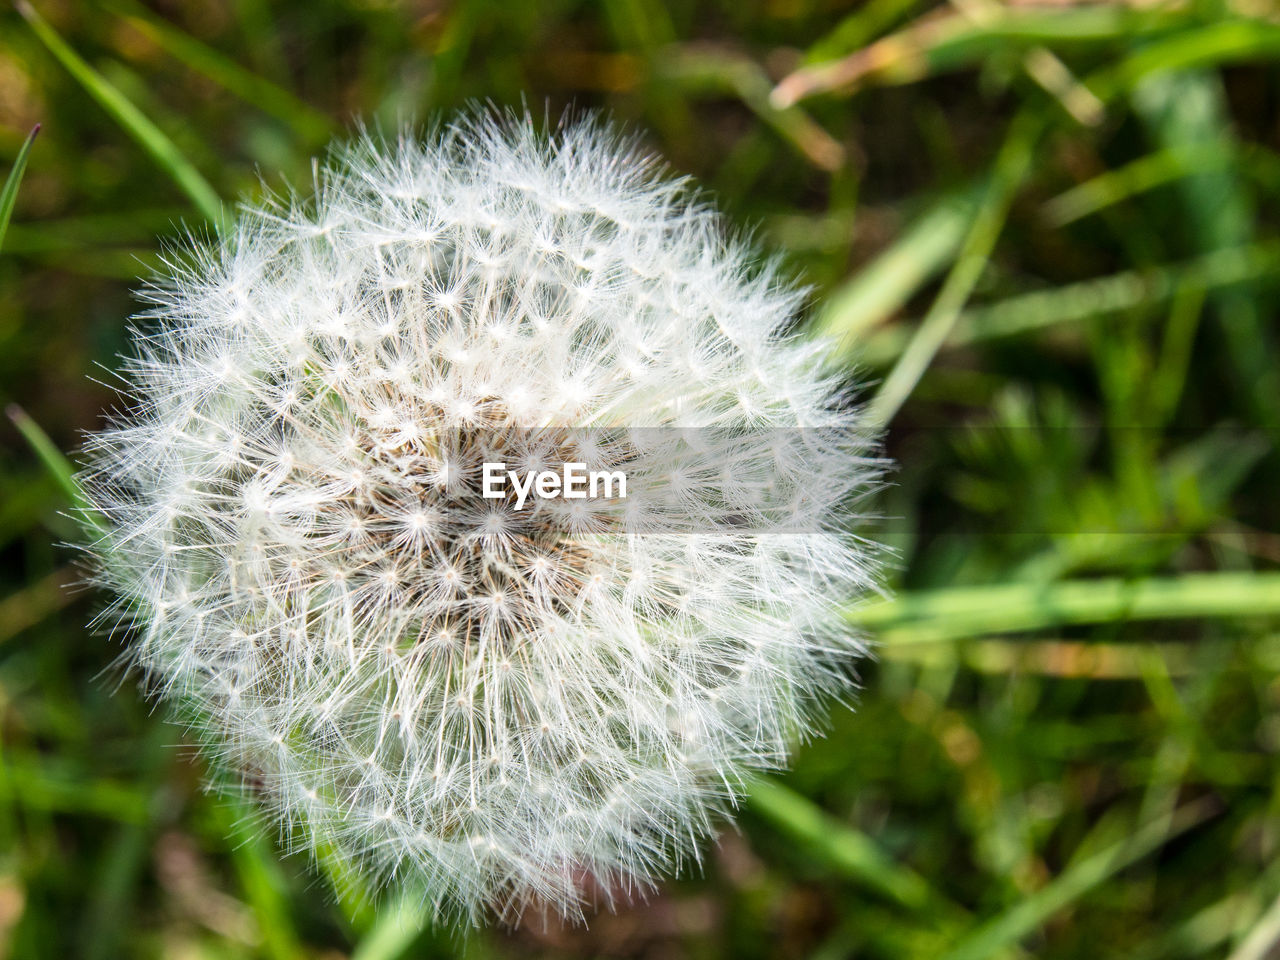 flower, nature, dandelion, growth, fragility, plant, beauty in nature, softness, close-up, flower head, delicate, freshness, uncultivated, no people, outdoors, day